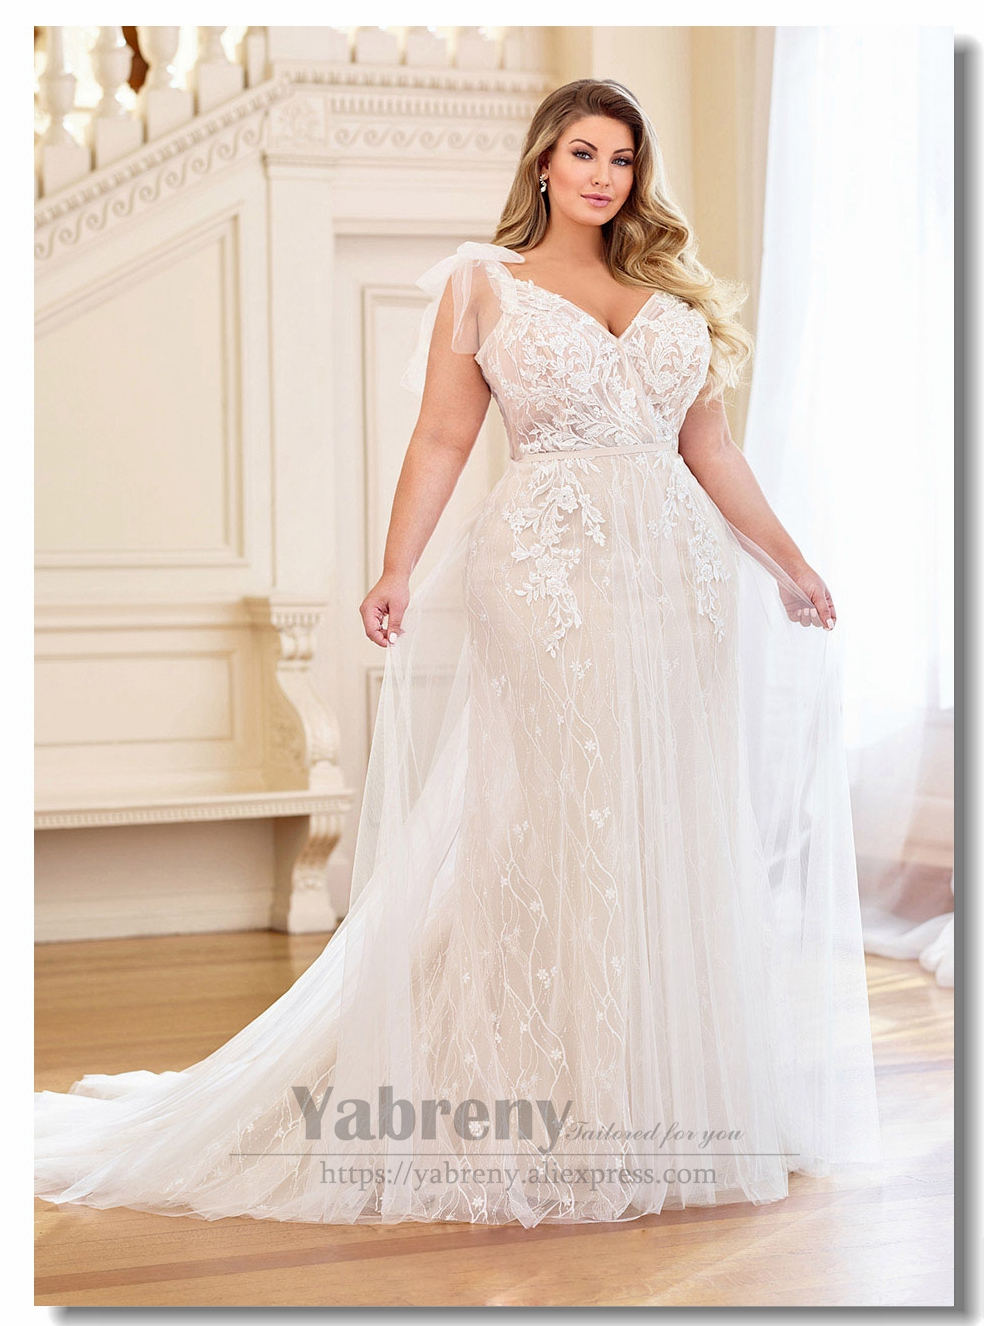 2019 New Arrival Plus Size Wedding Dresses Wedding Dresses Aliexpress,Wedding Guest White African Dresses For Church